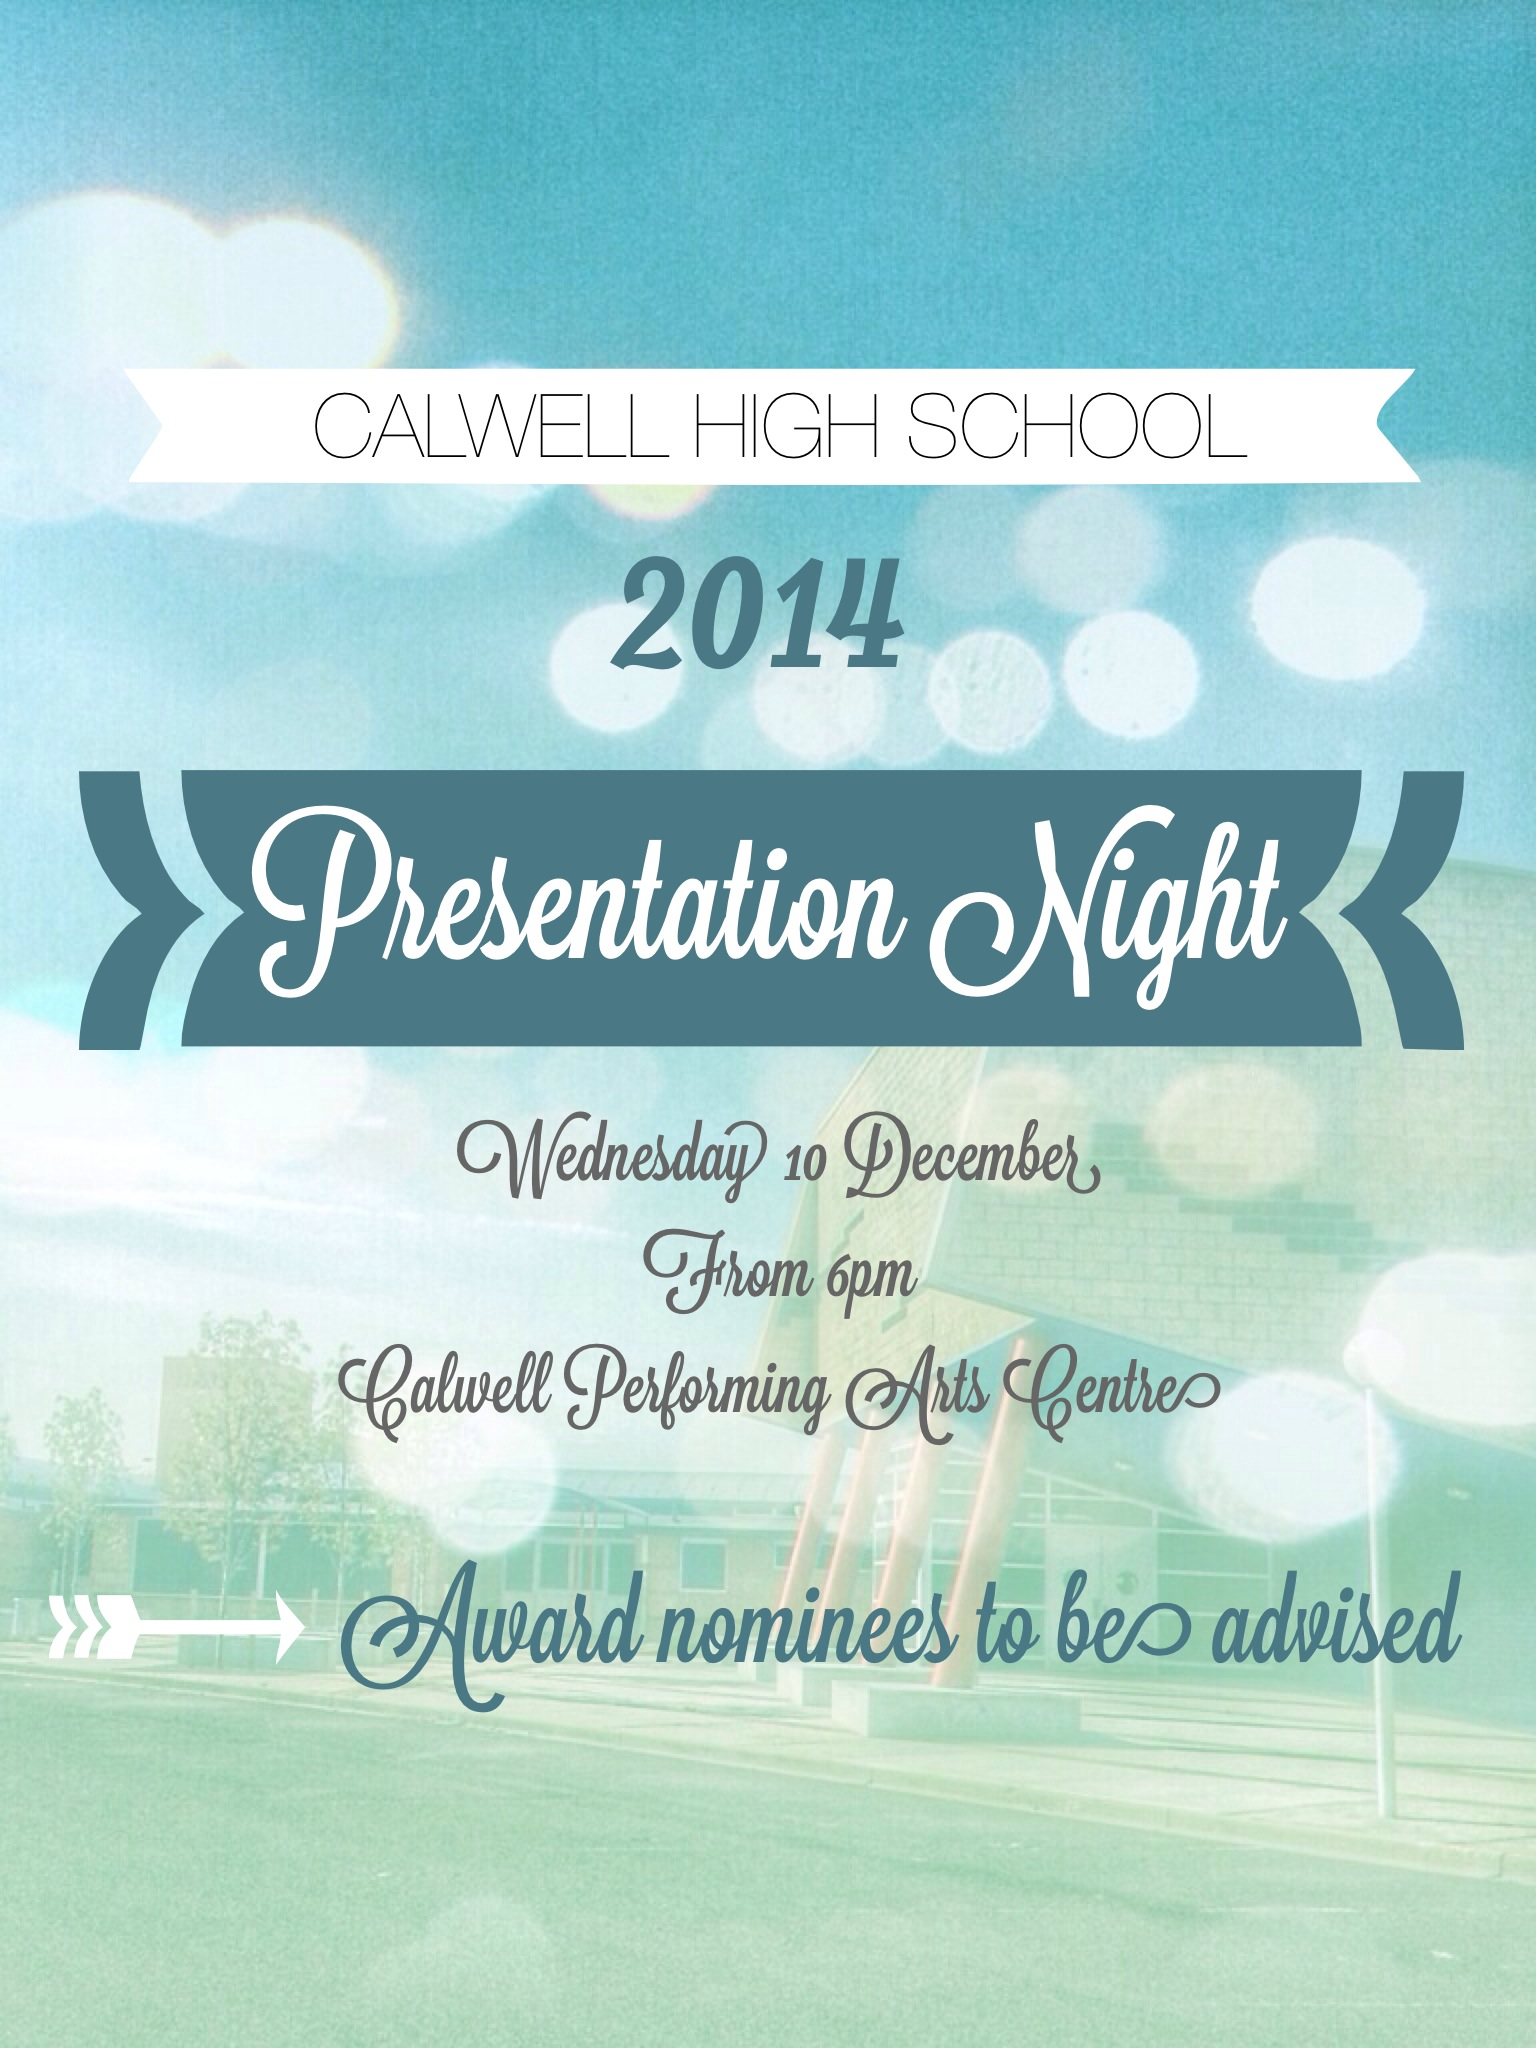 Presentation Night 2014 Wednesday 10 December from 6pm